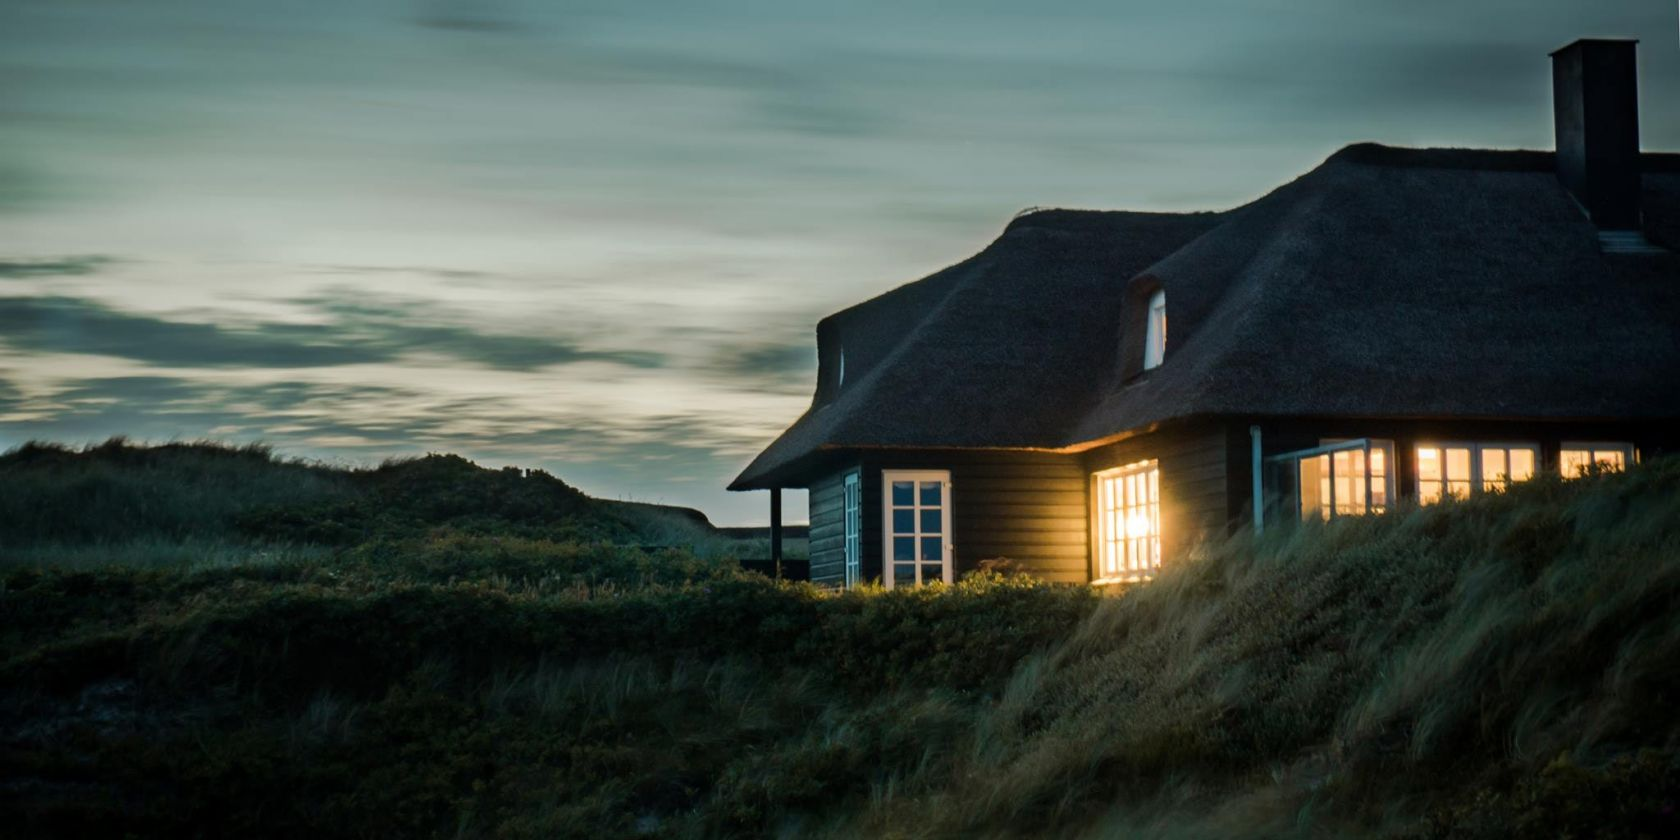 Preparing for vacation: keep your home safe while you're away